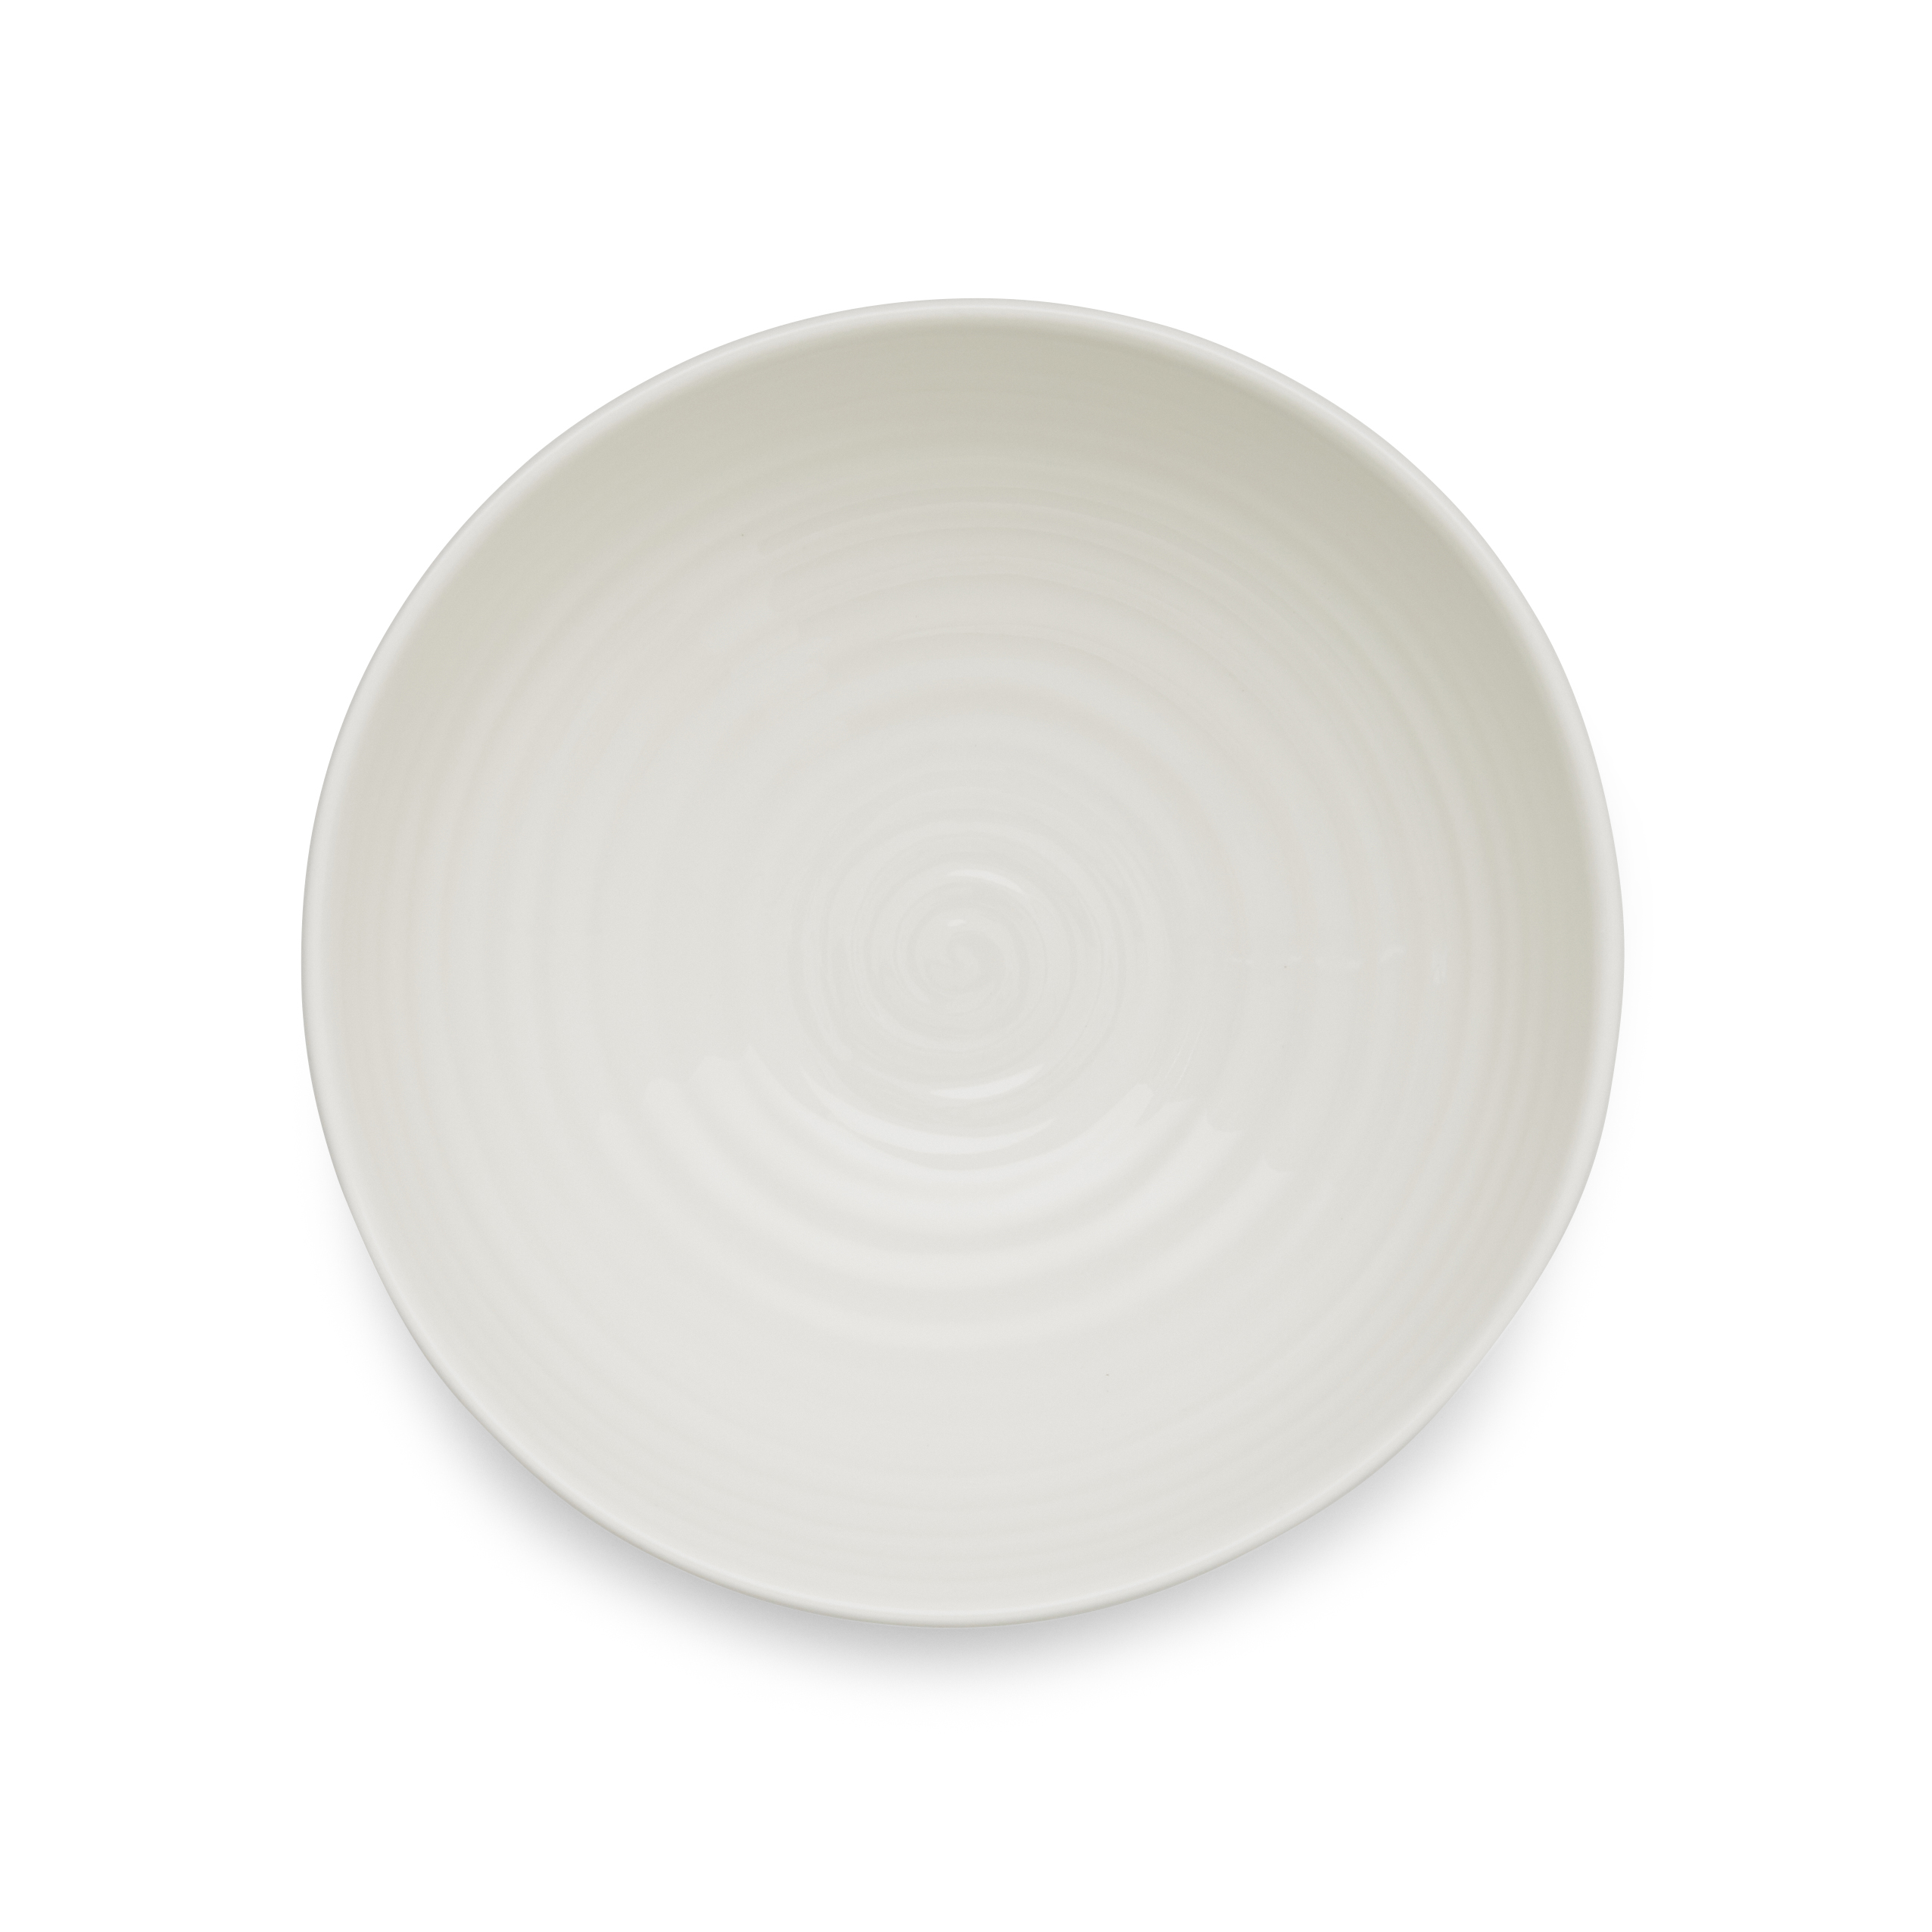 Portmeirion Sophie Conran White Noodle Bowl image number 1